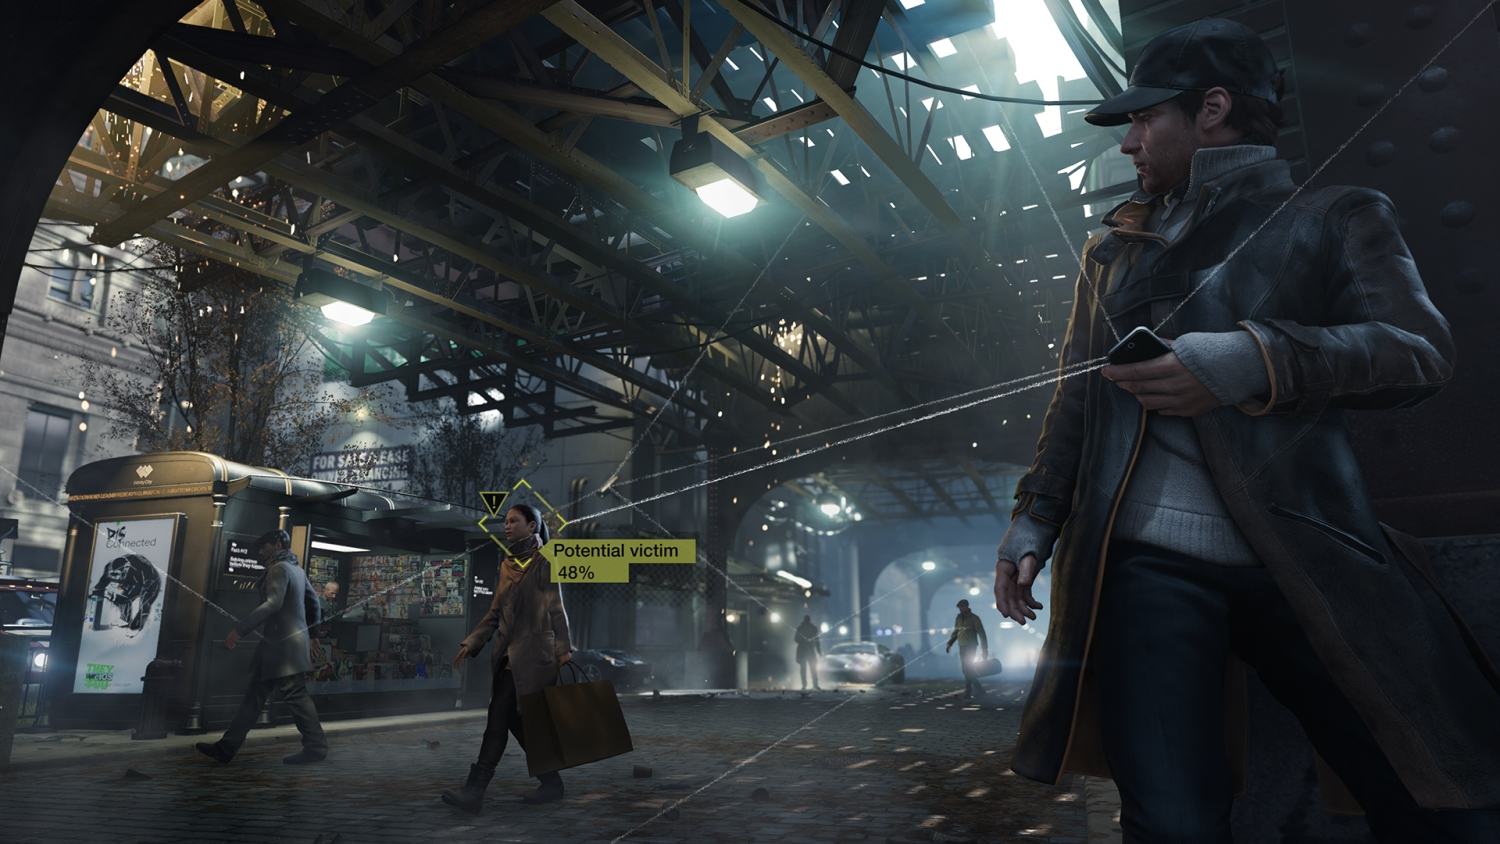 Watch Dogs' voyeurism, moral choices and clever AI